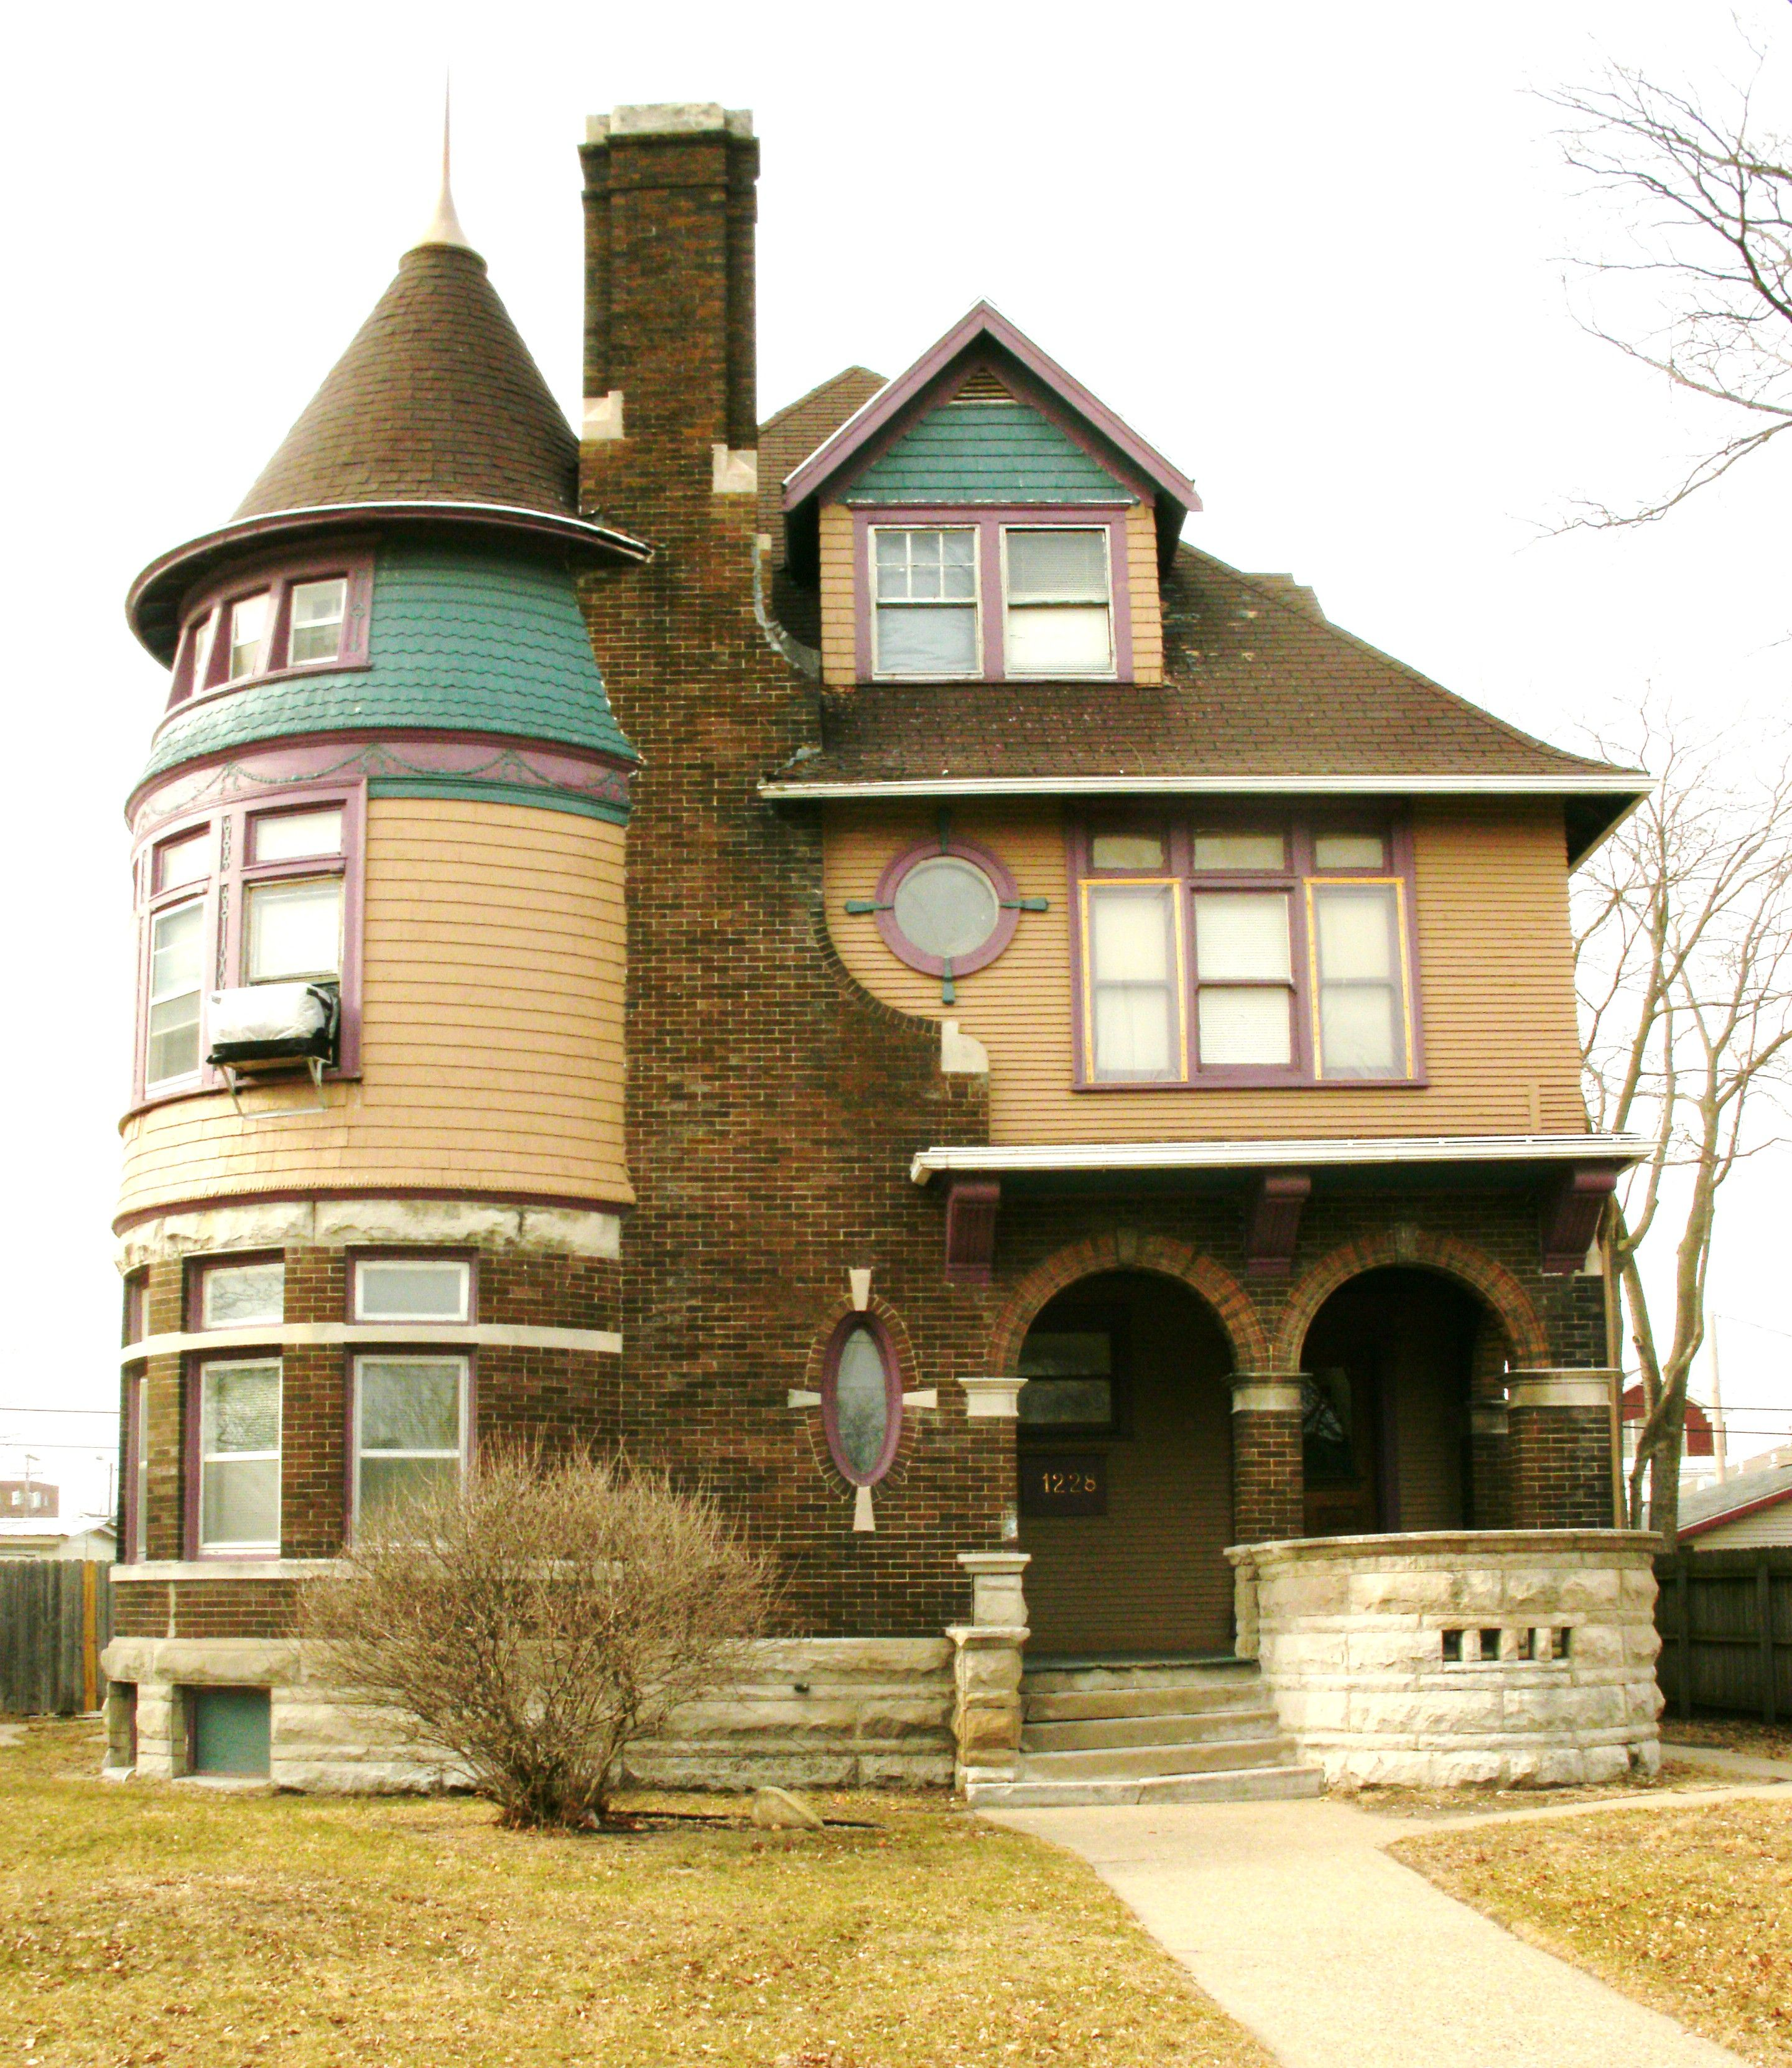 Cedar Rapids Ia Images Thecelebritypix Victorian Homes Architecture House National Register Of Historic Places